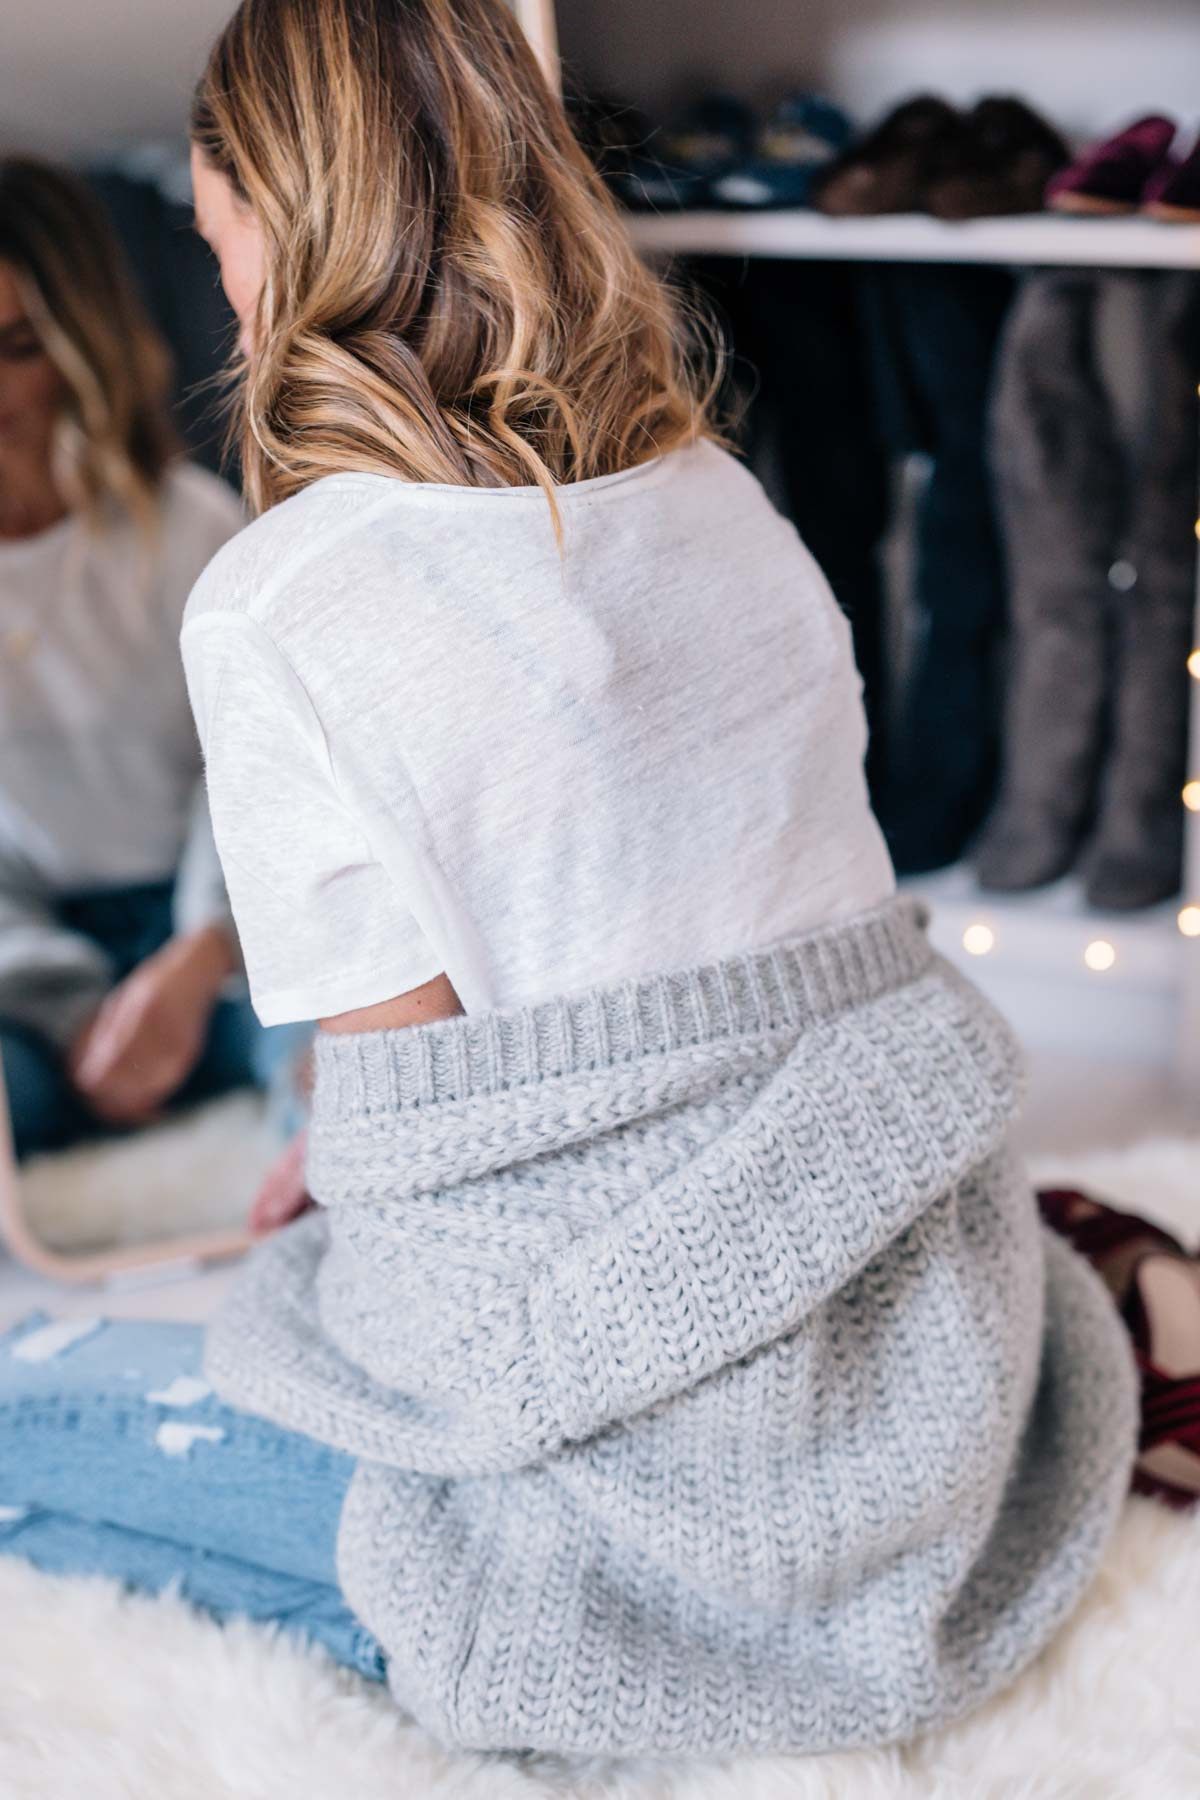 Jess Ann Kirby gets comfortable at home with a chunky knit sweater and white tee